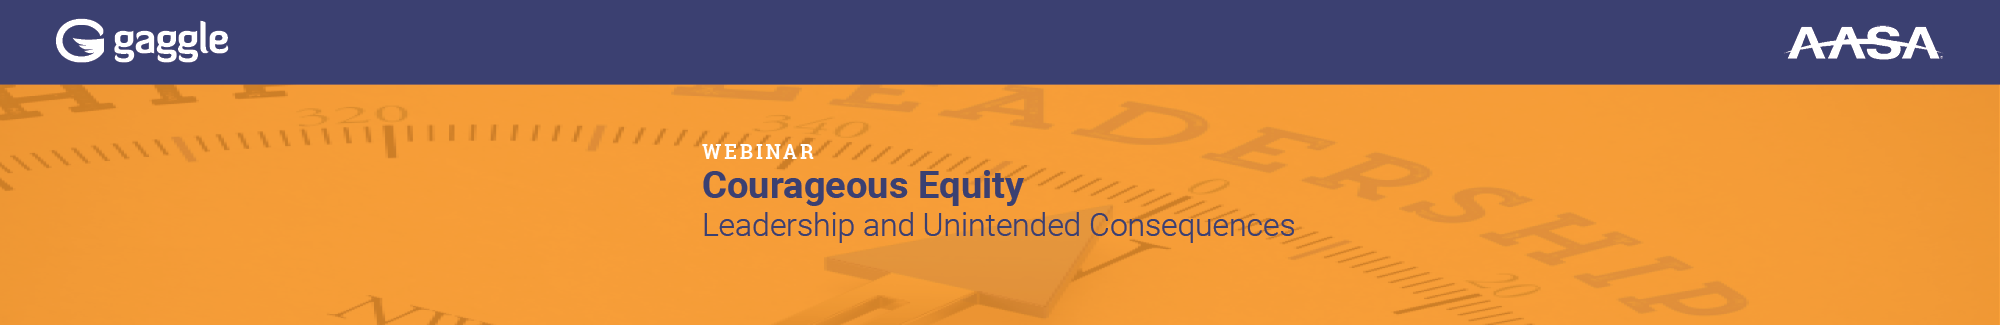 Courageous Equity: Leadership and Unintended Consequences